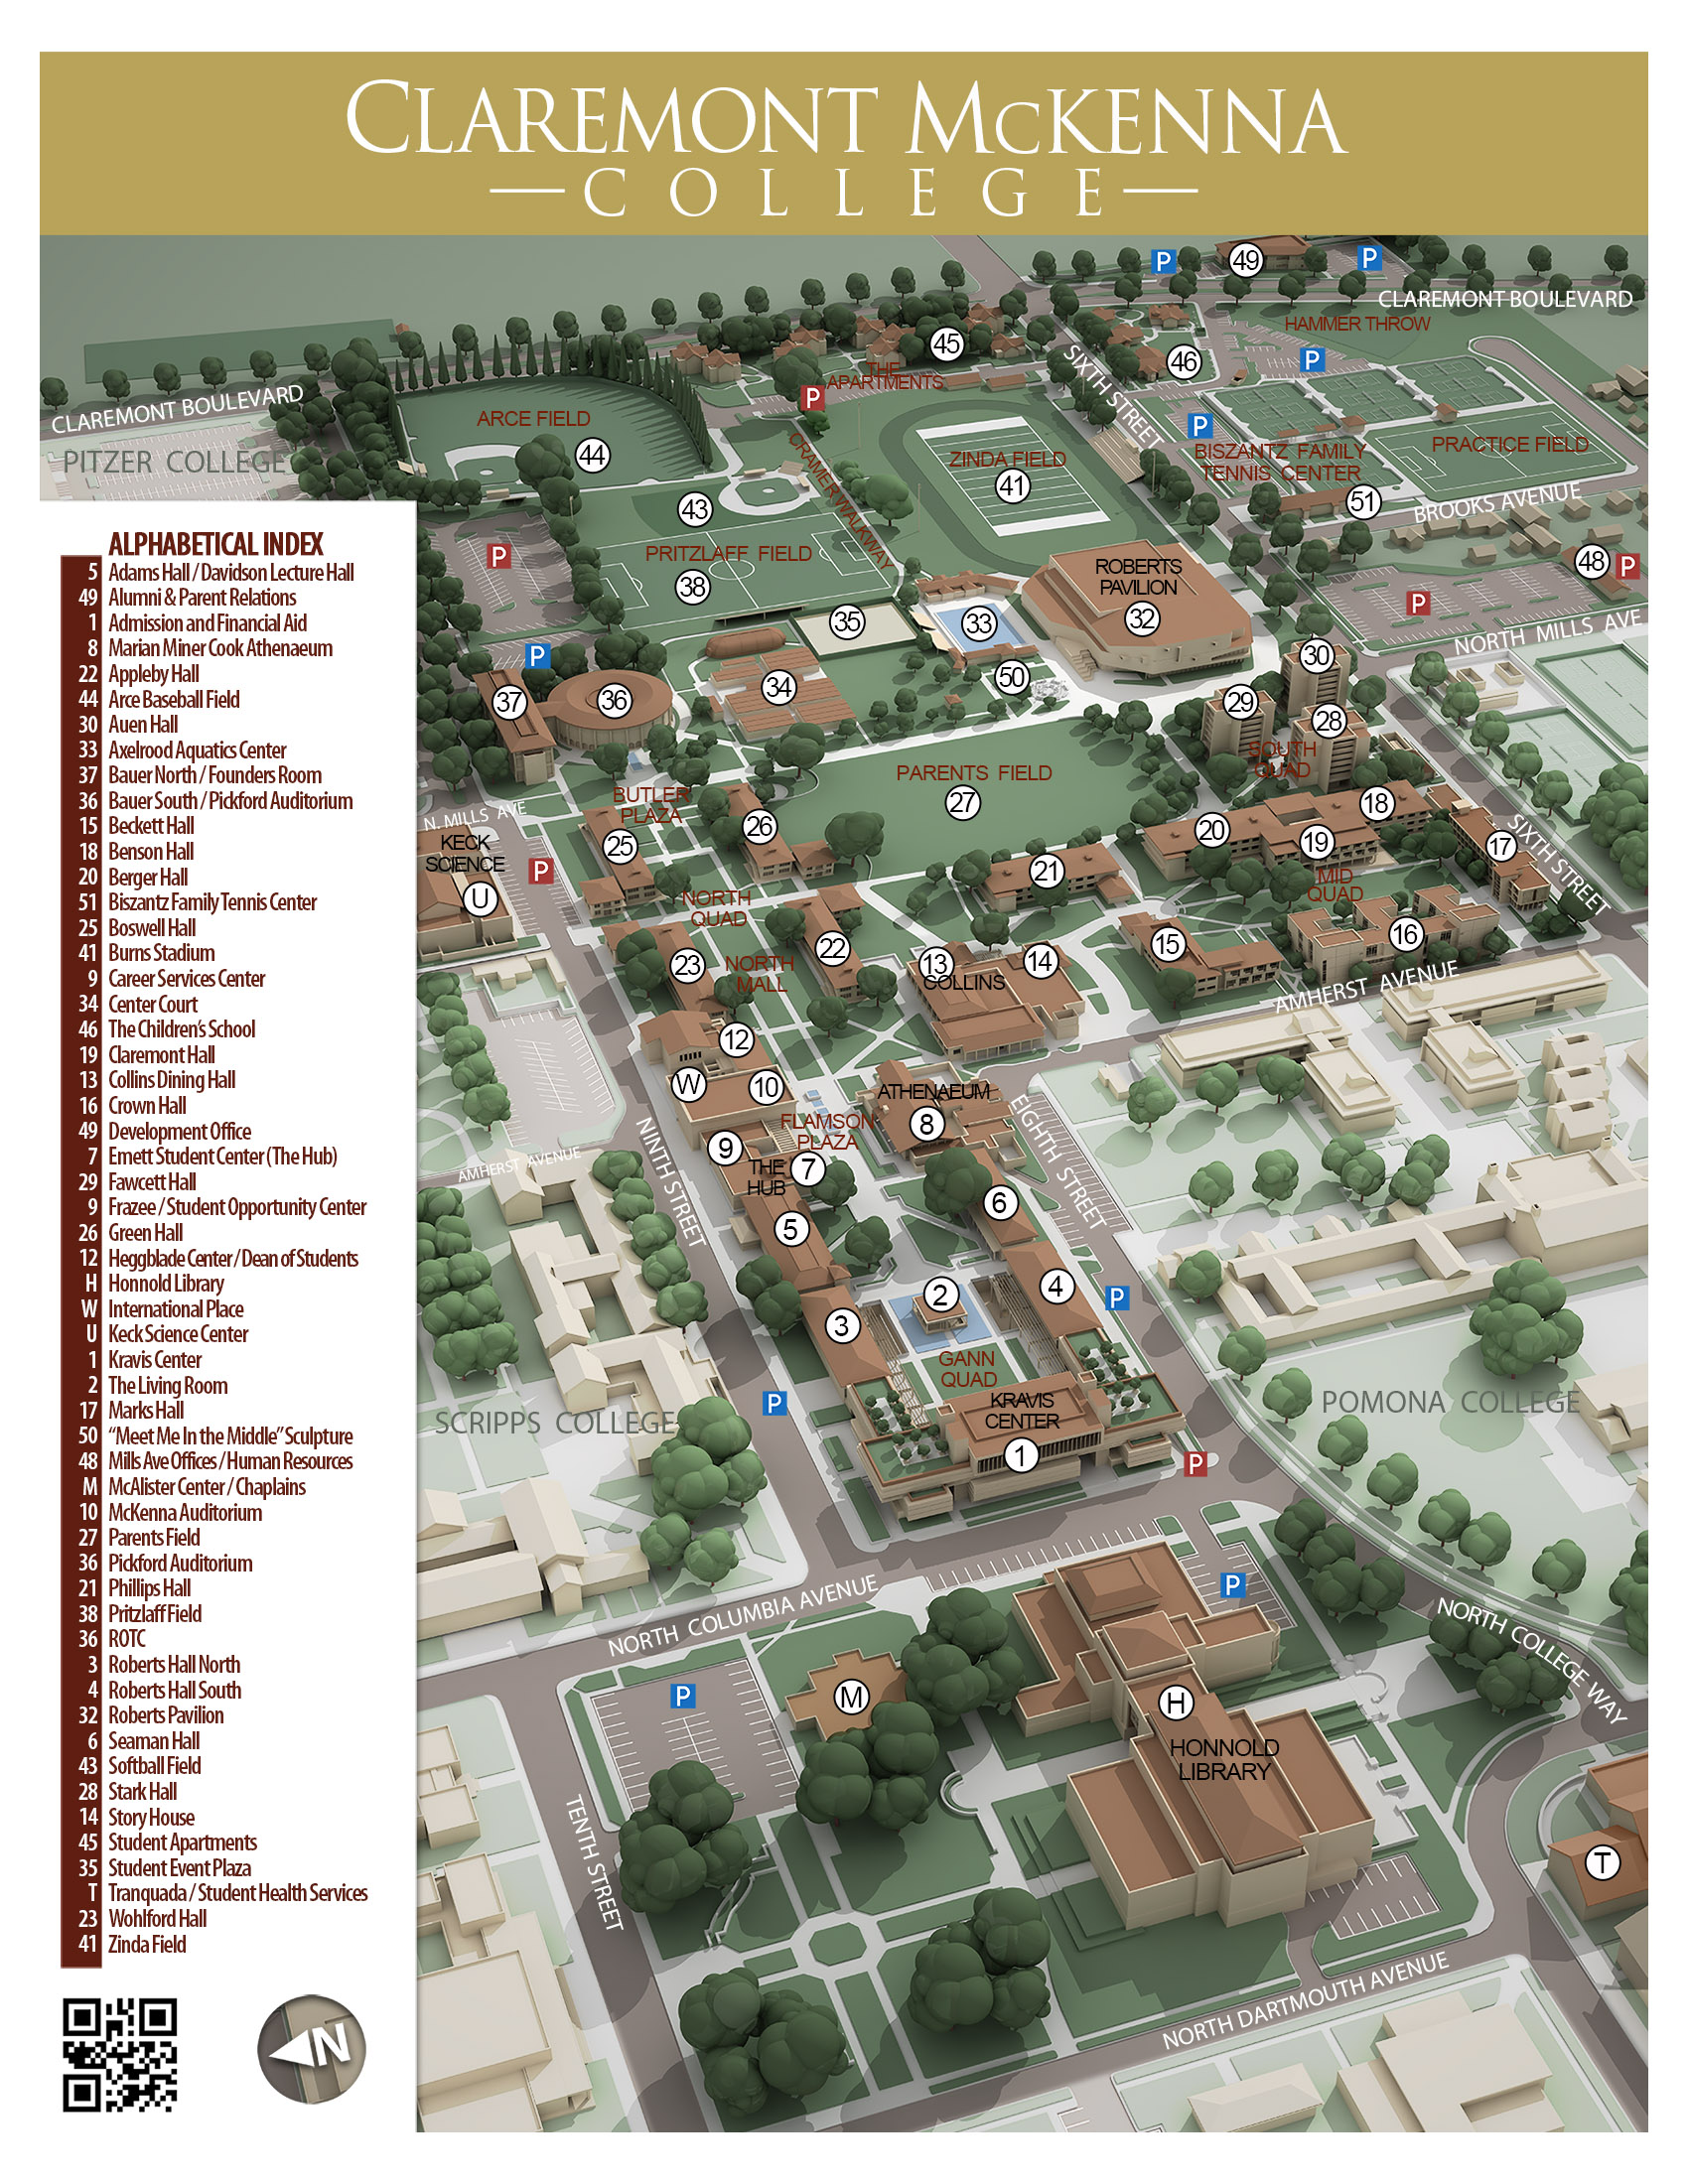 Cmc Campus Maps Claremont Mckenna College